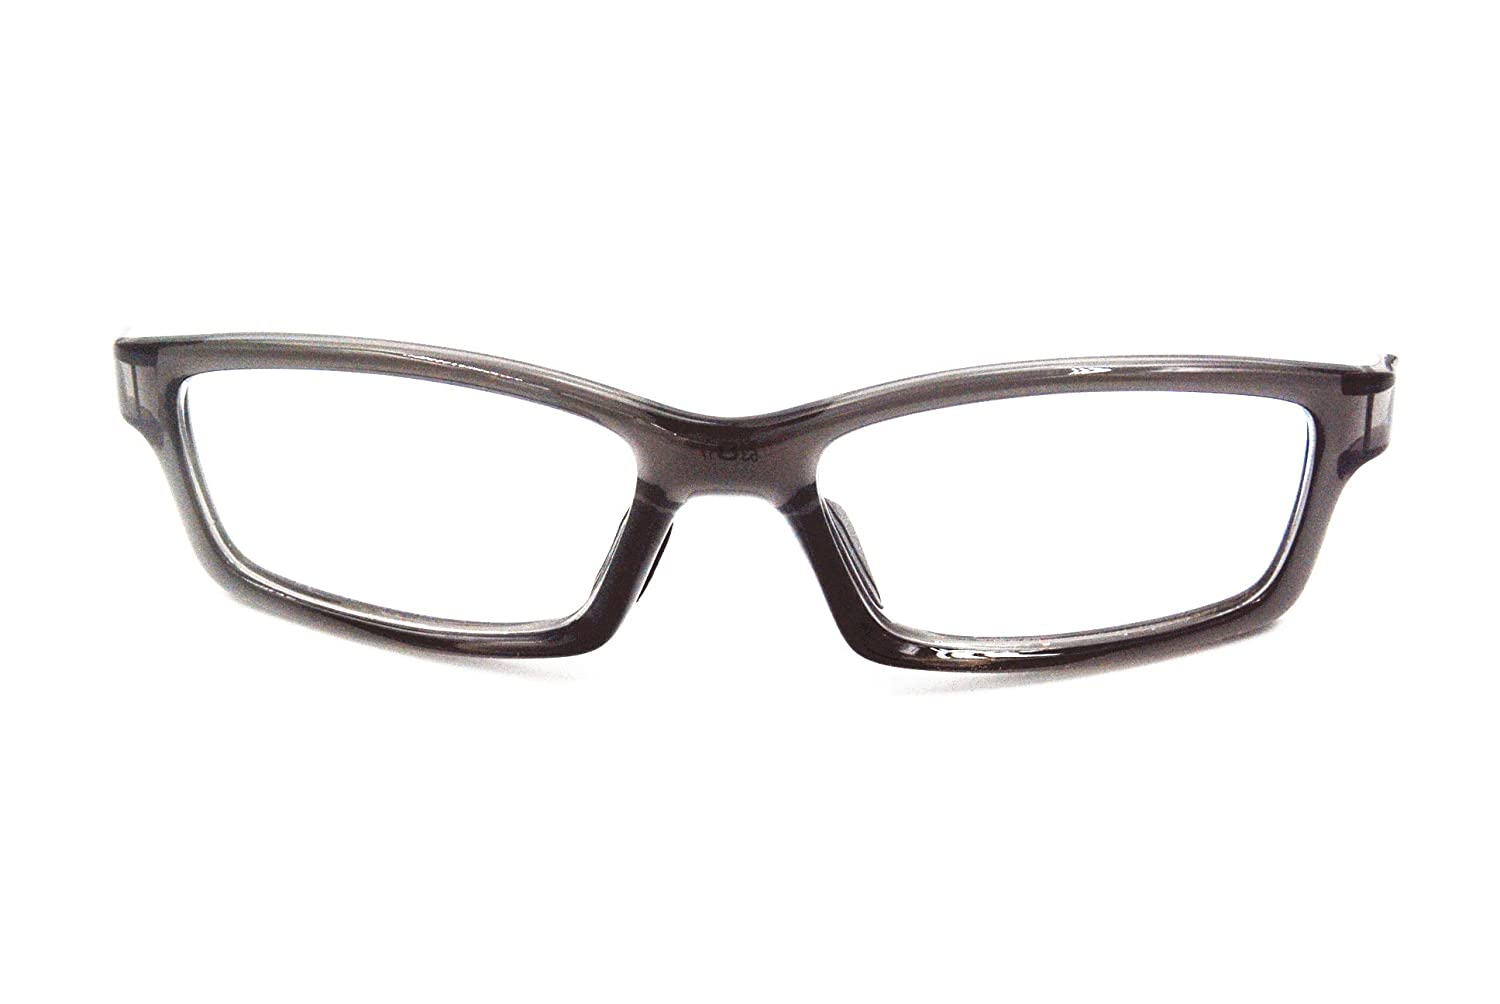 a2938ad254a Amazon.com  Replacement Eye Frame for Crosslink OX8027 0253 Prescription  Glass Temples 53mm NicelyFit (Grey Smoke)  Clothing